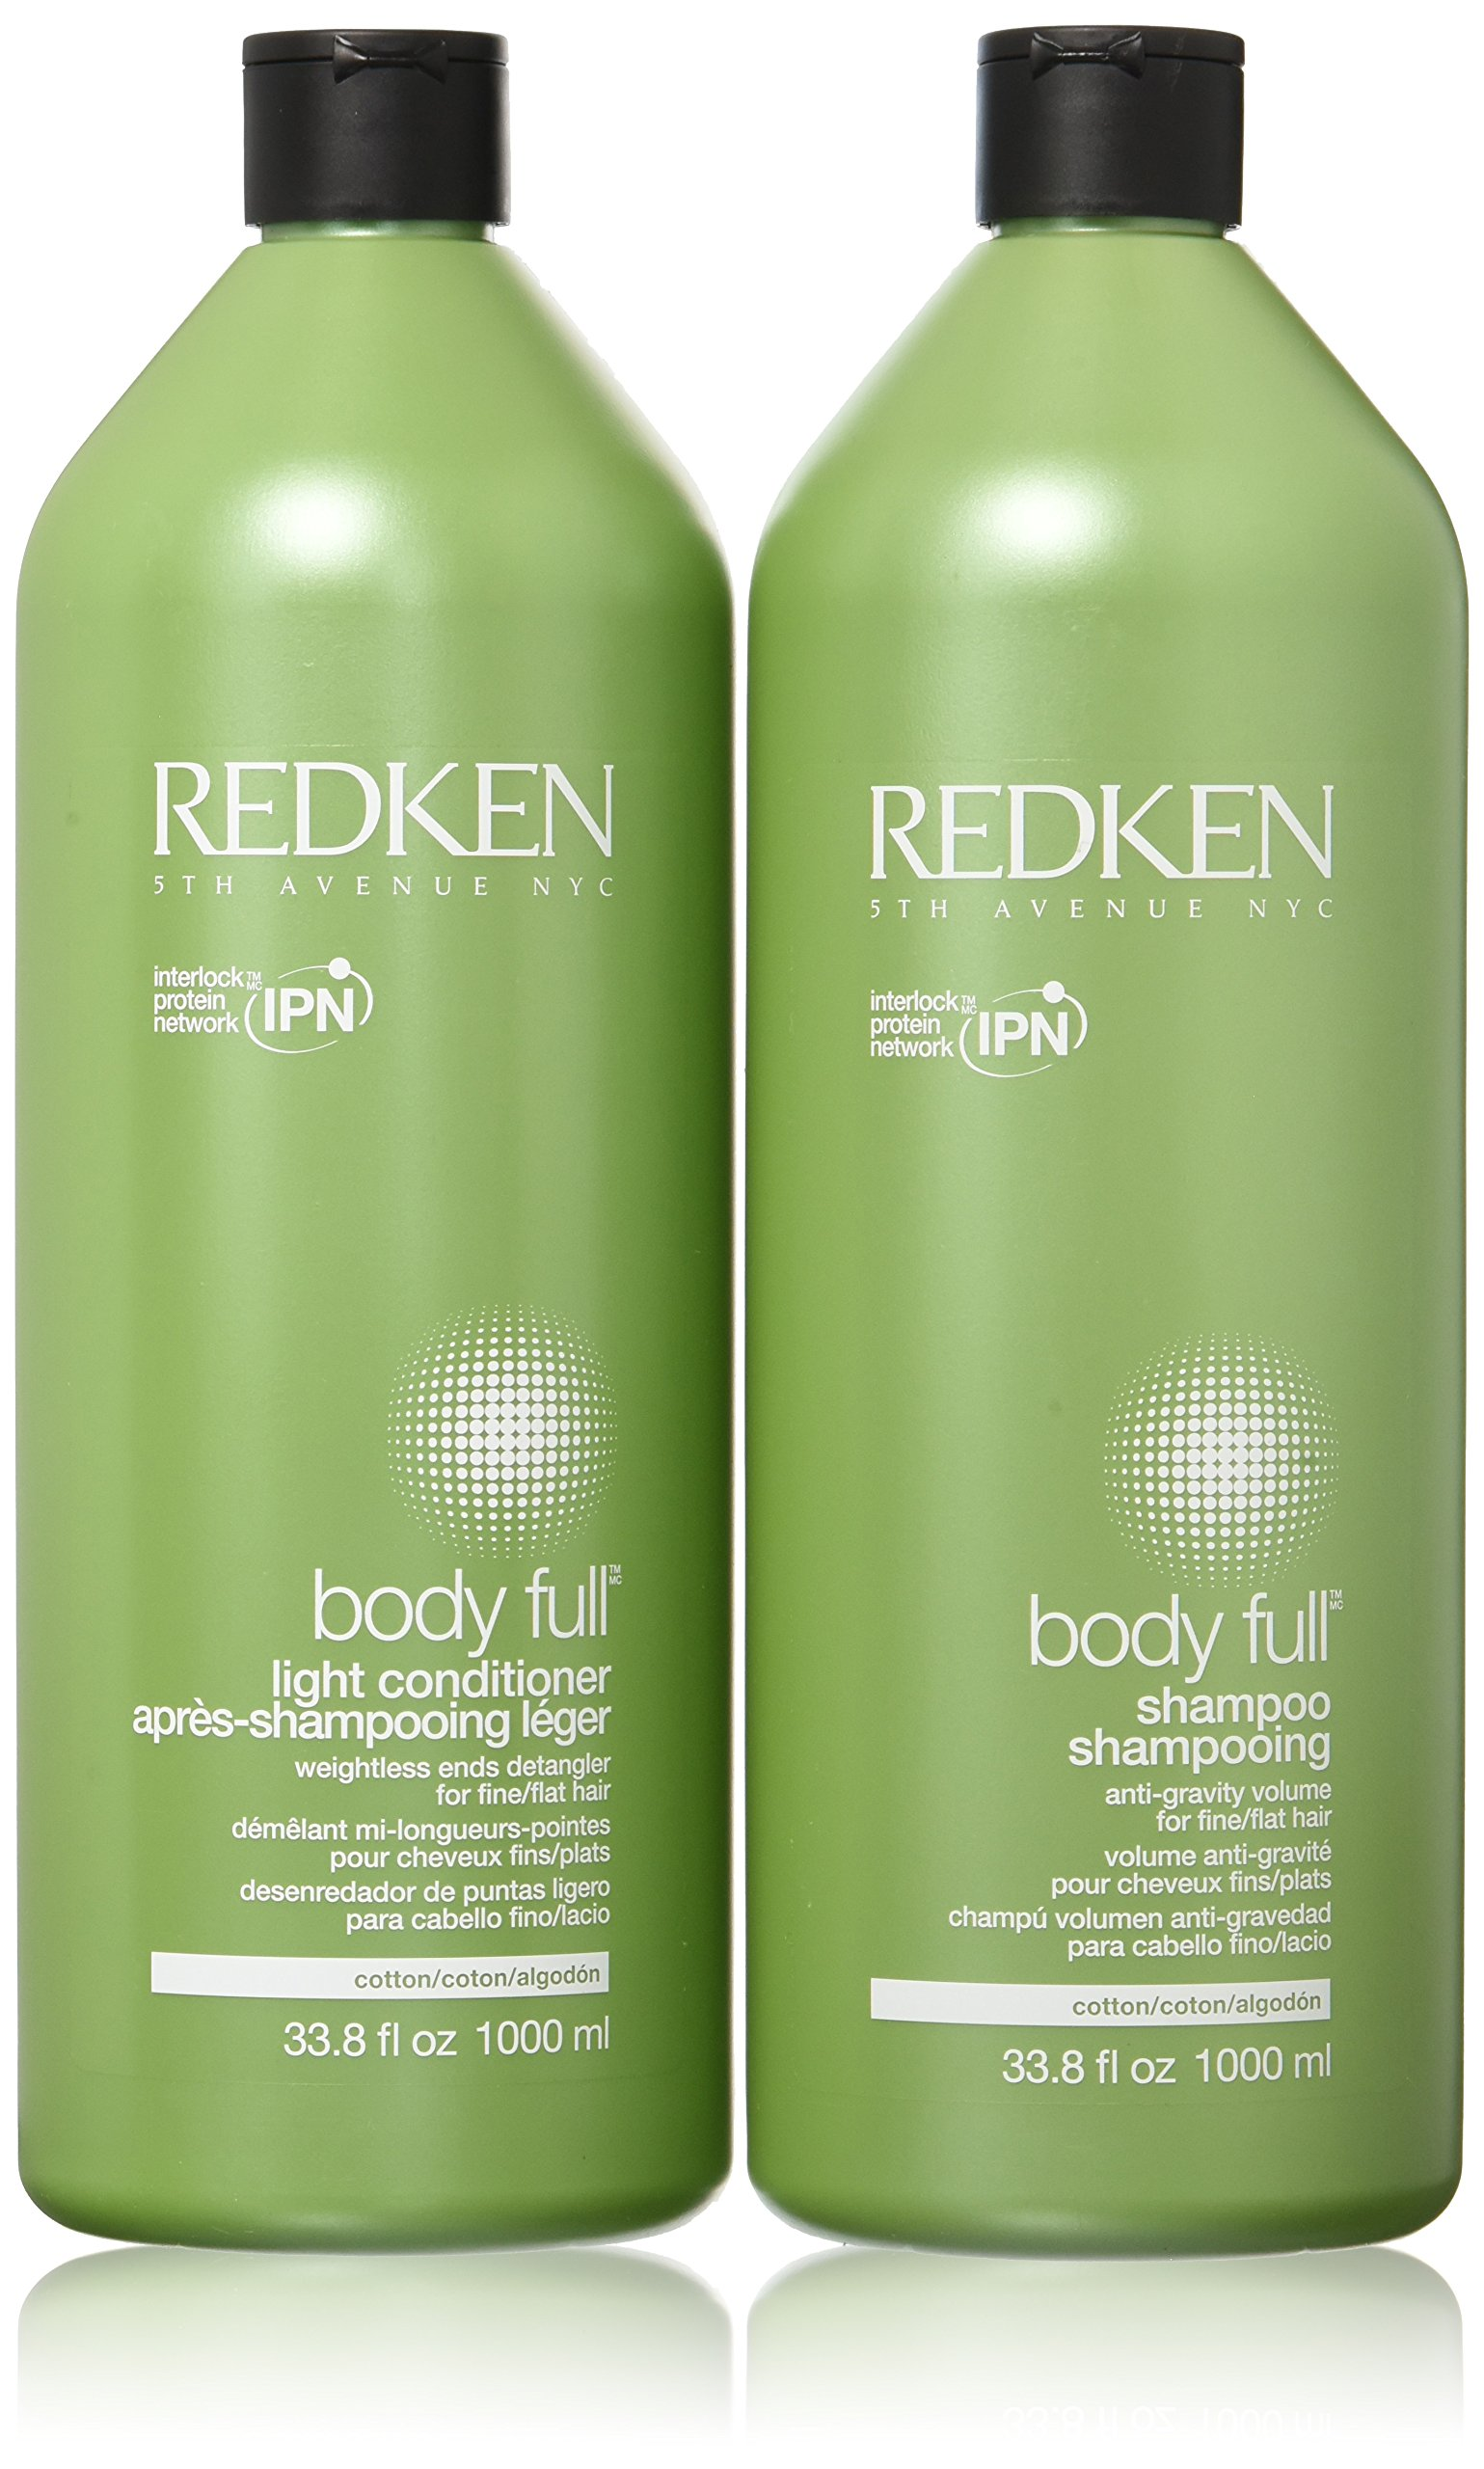 Redken Body Full Shampoo & Conditioner Liter Duo